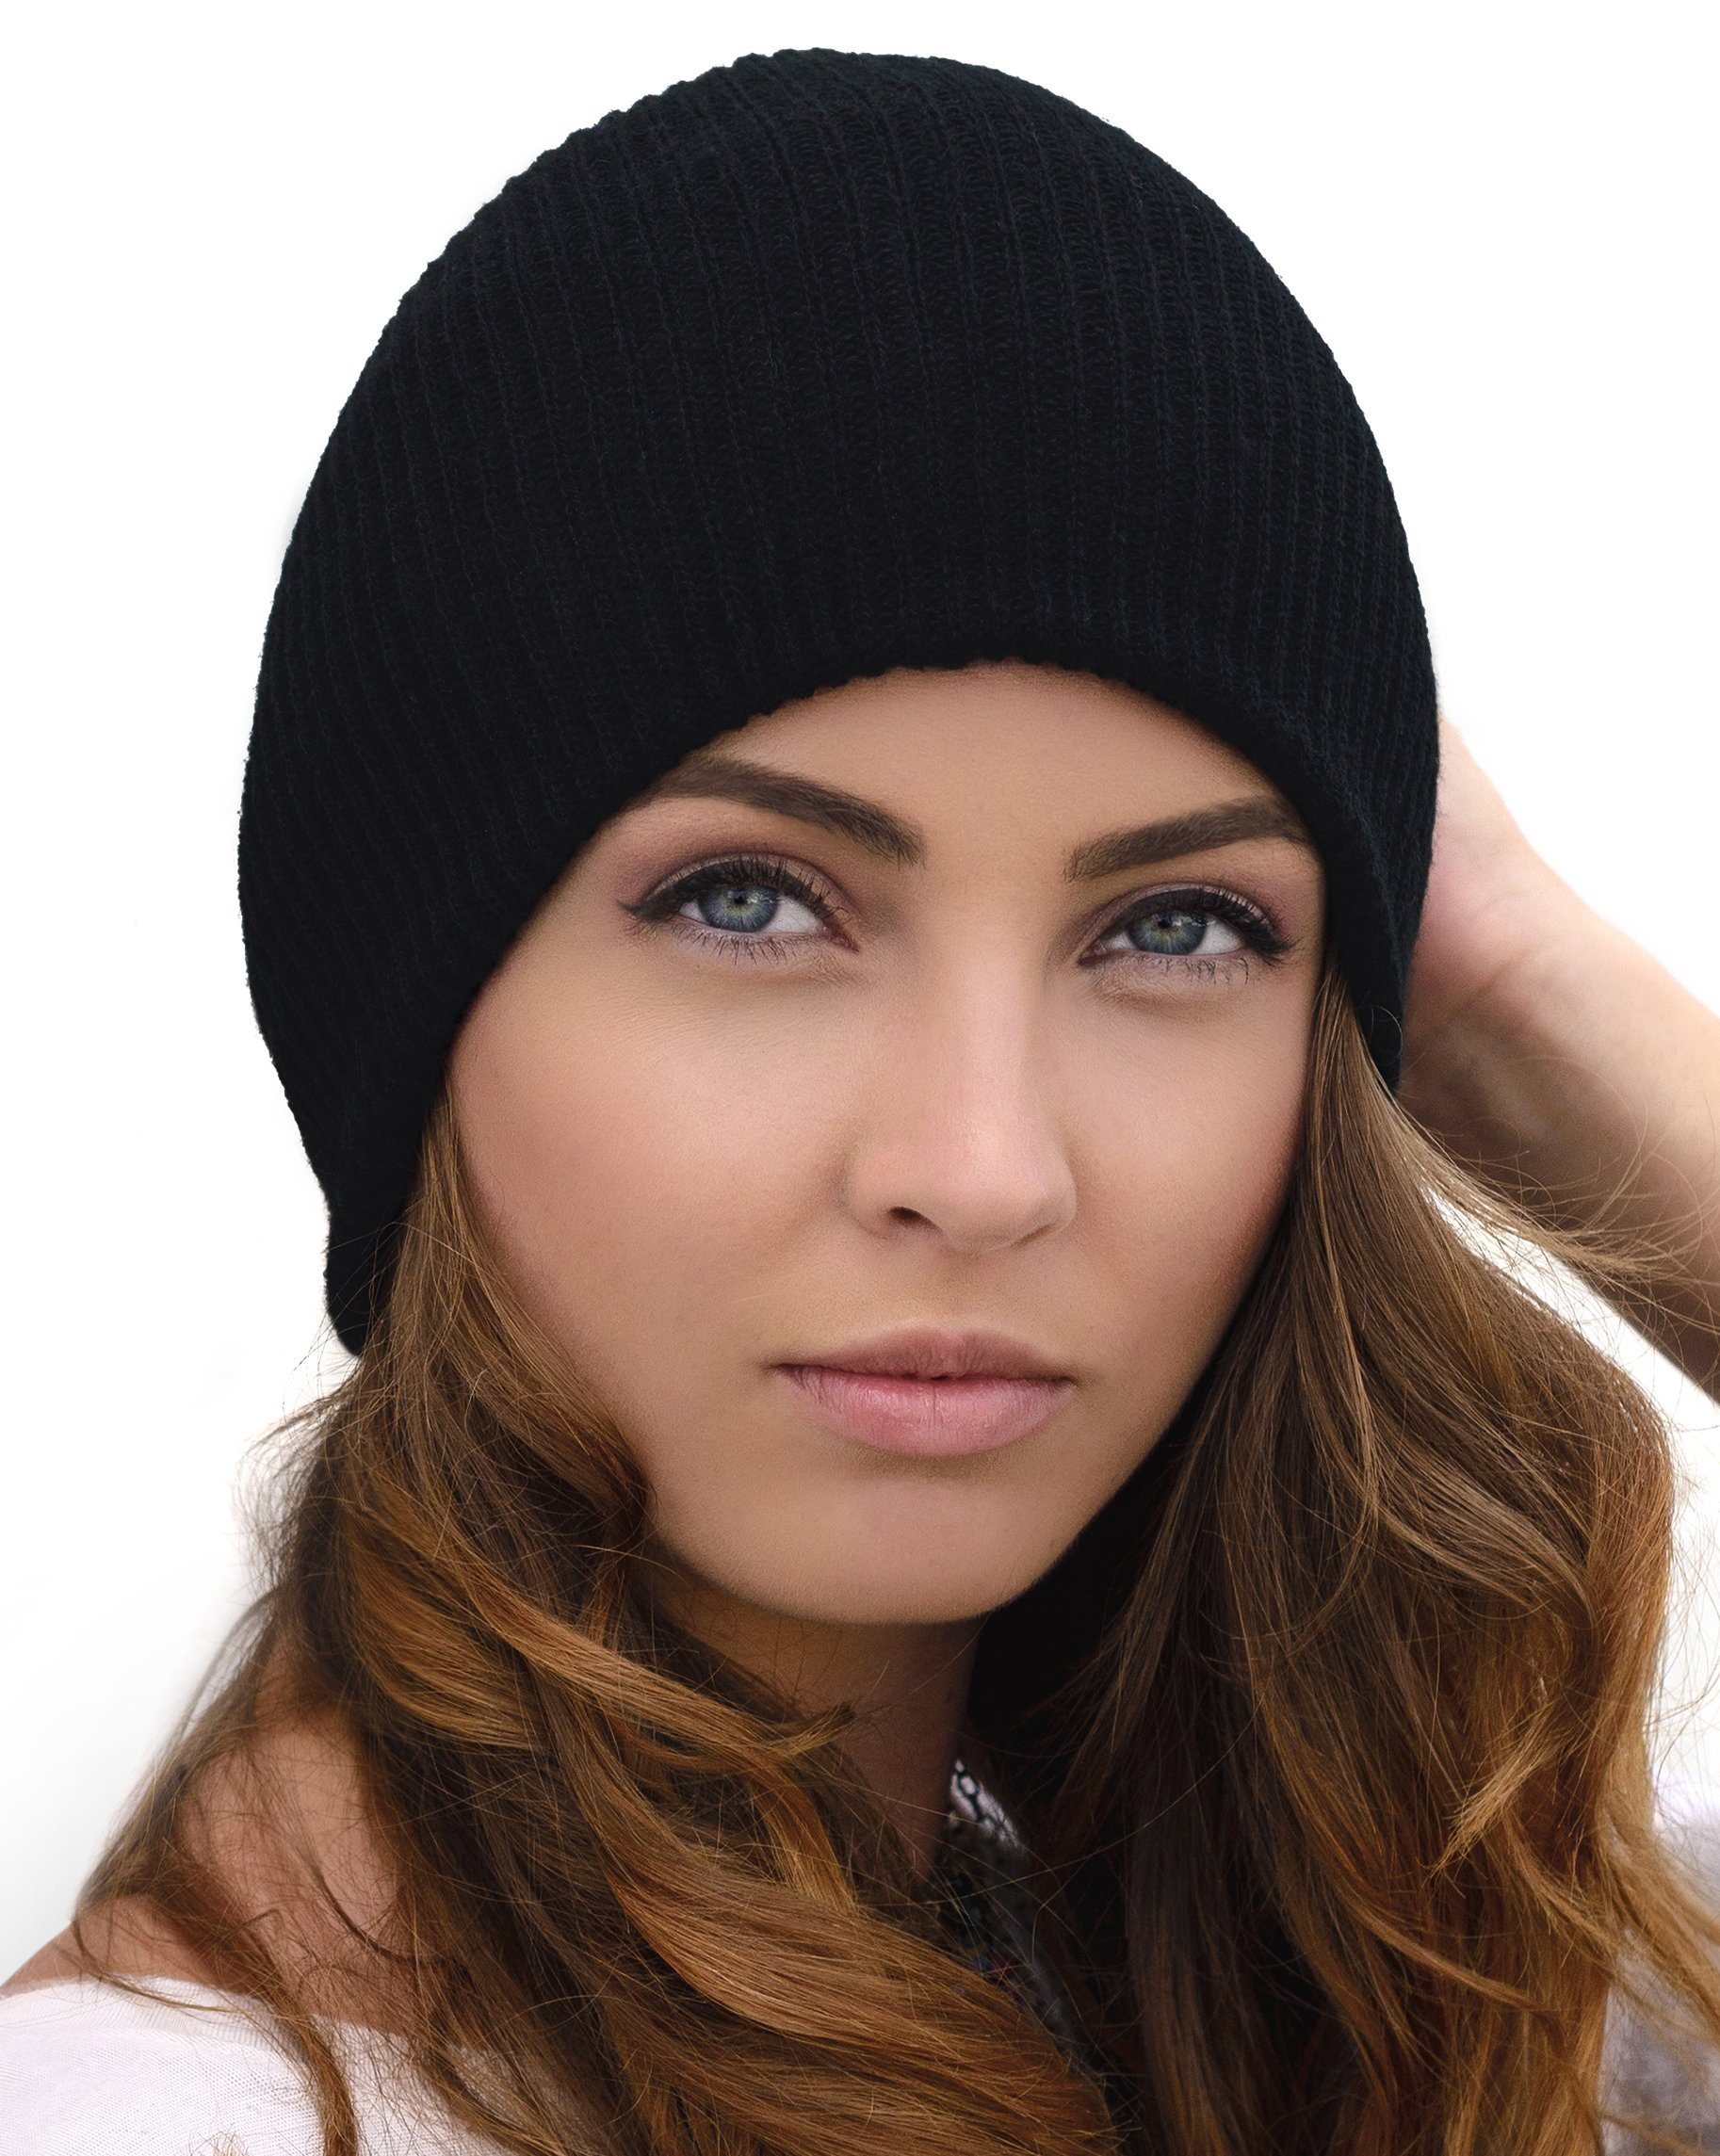 Winter Hats For Women Who Are Looking For Something Warm, Stylish And Soft,Black,One Size